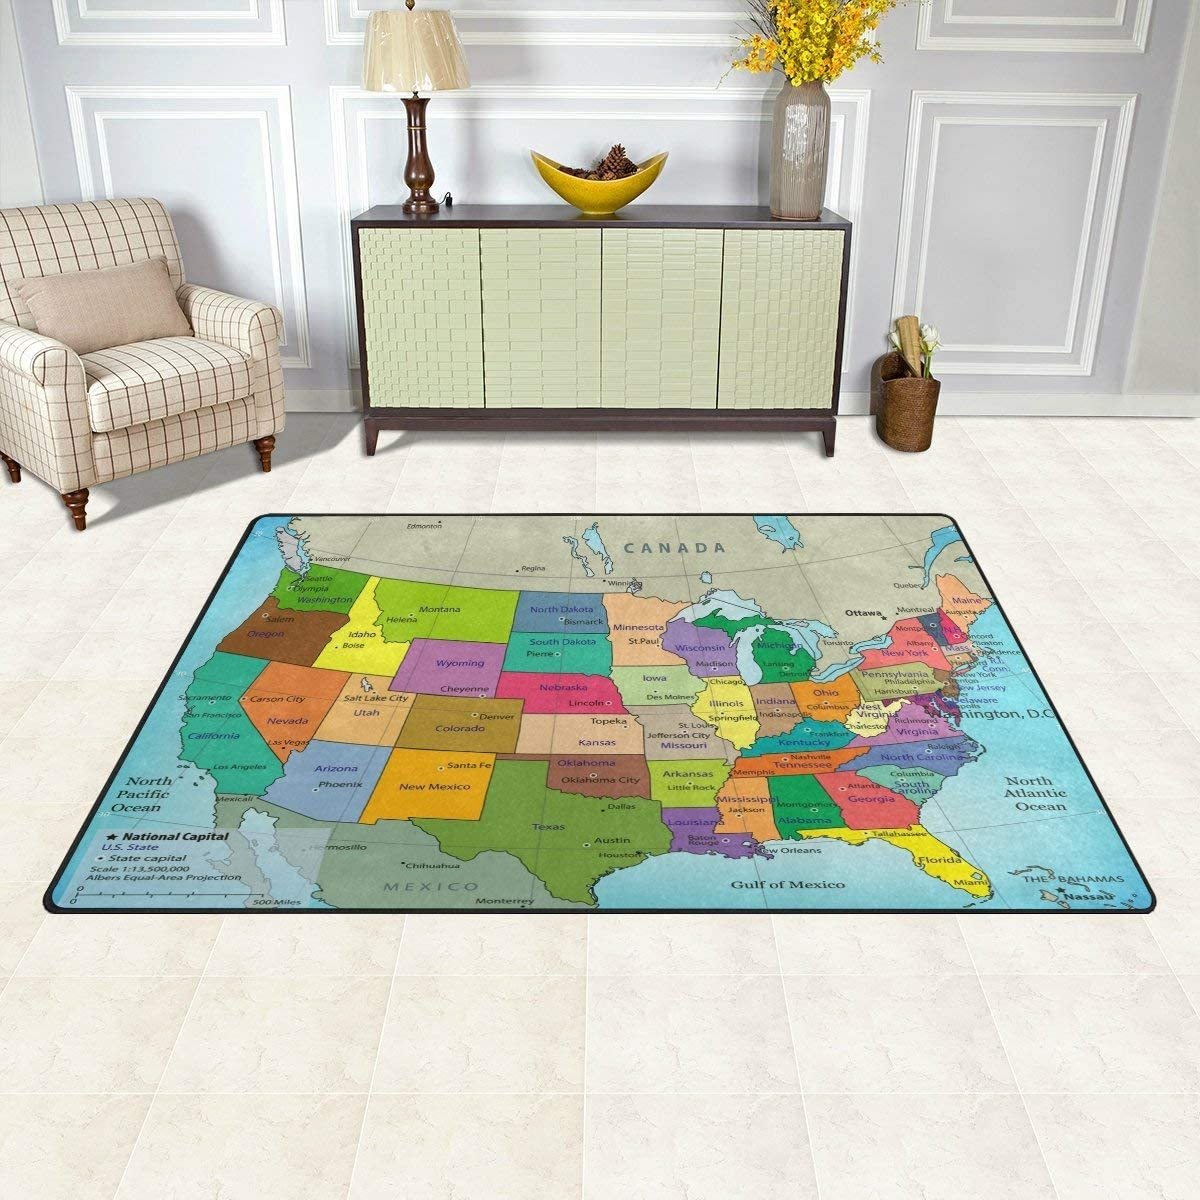 Area Rug 31x20 Inches Usa Map Carpet For Living Room Bedroom Amazon Co Uk Kitchen Home